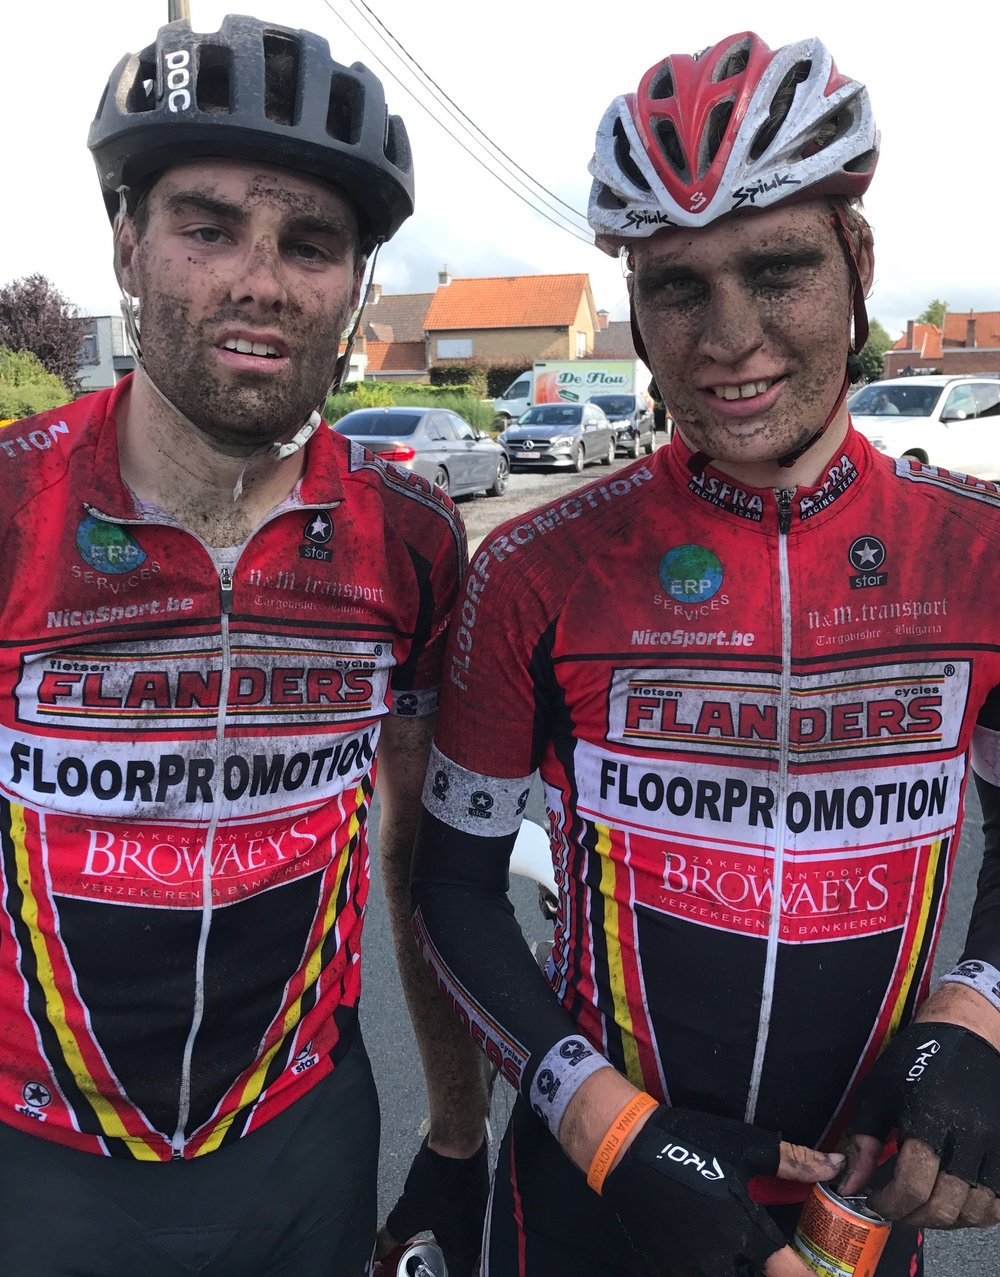 Tour of East Flanders 17 - Peter Livingstone & Oskari Vainionpaa (Finland) after the Stage 2 finish in Adegem.